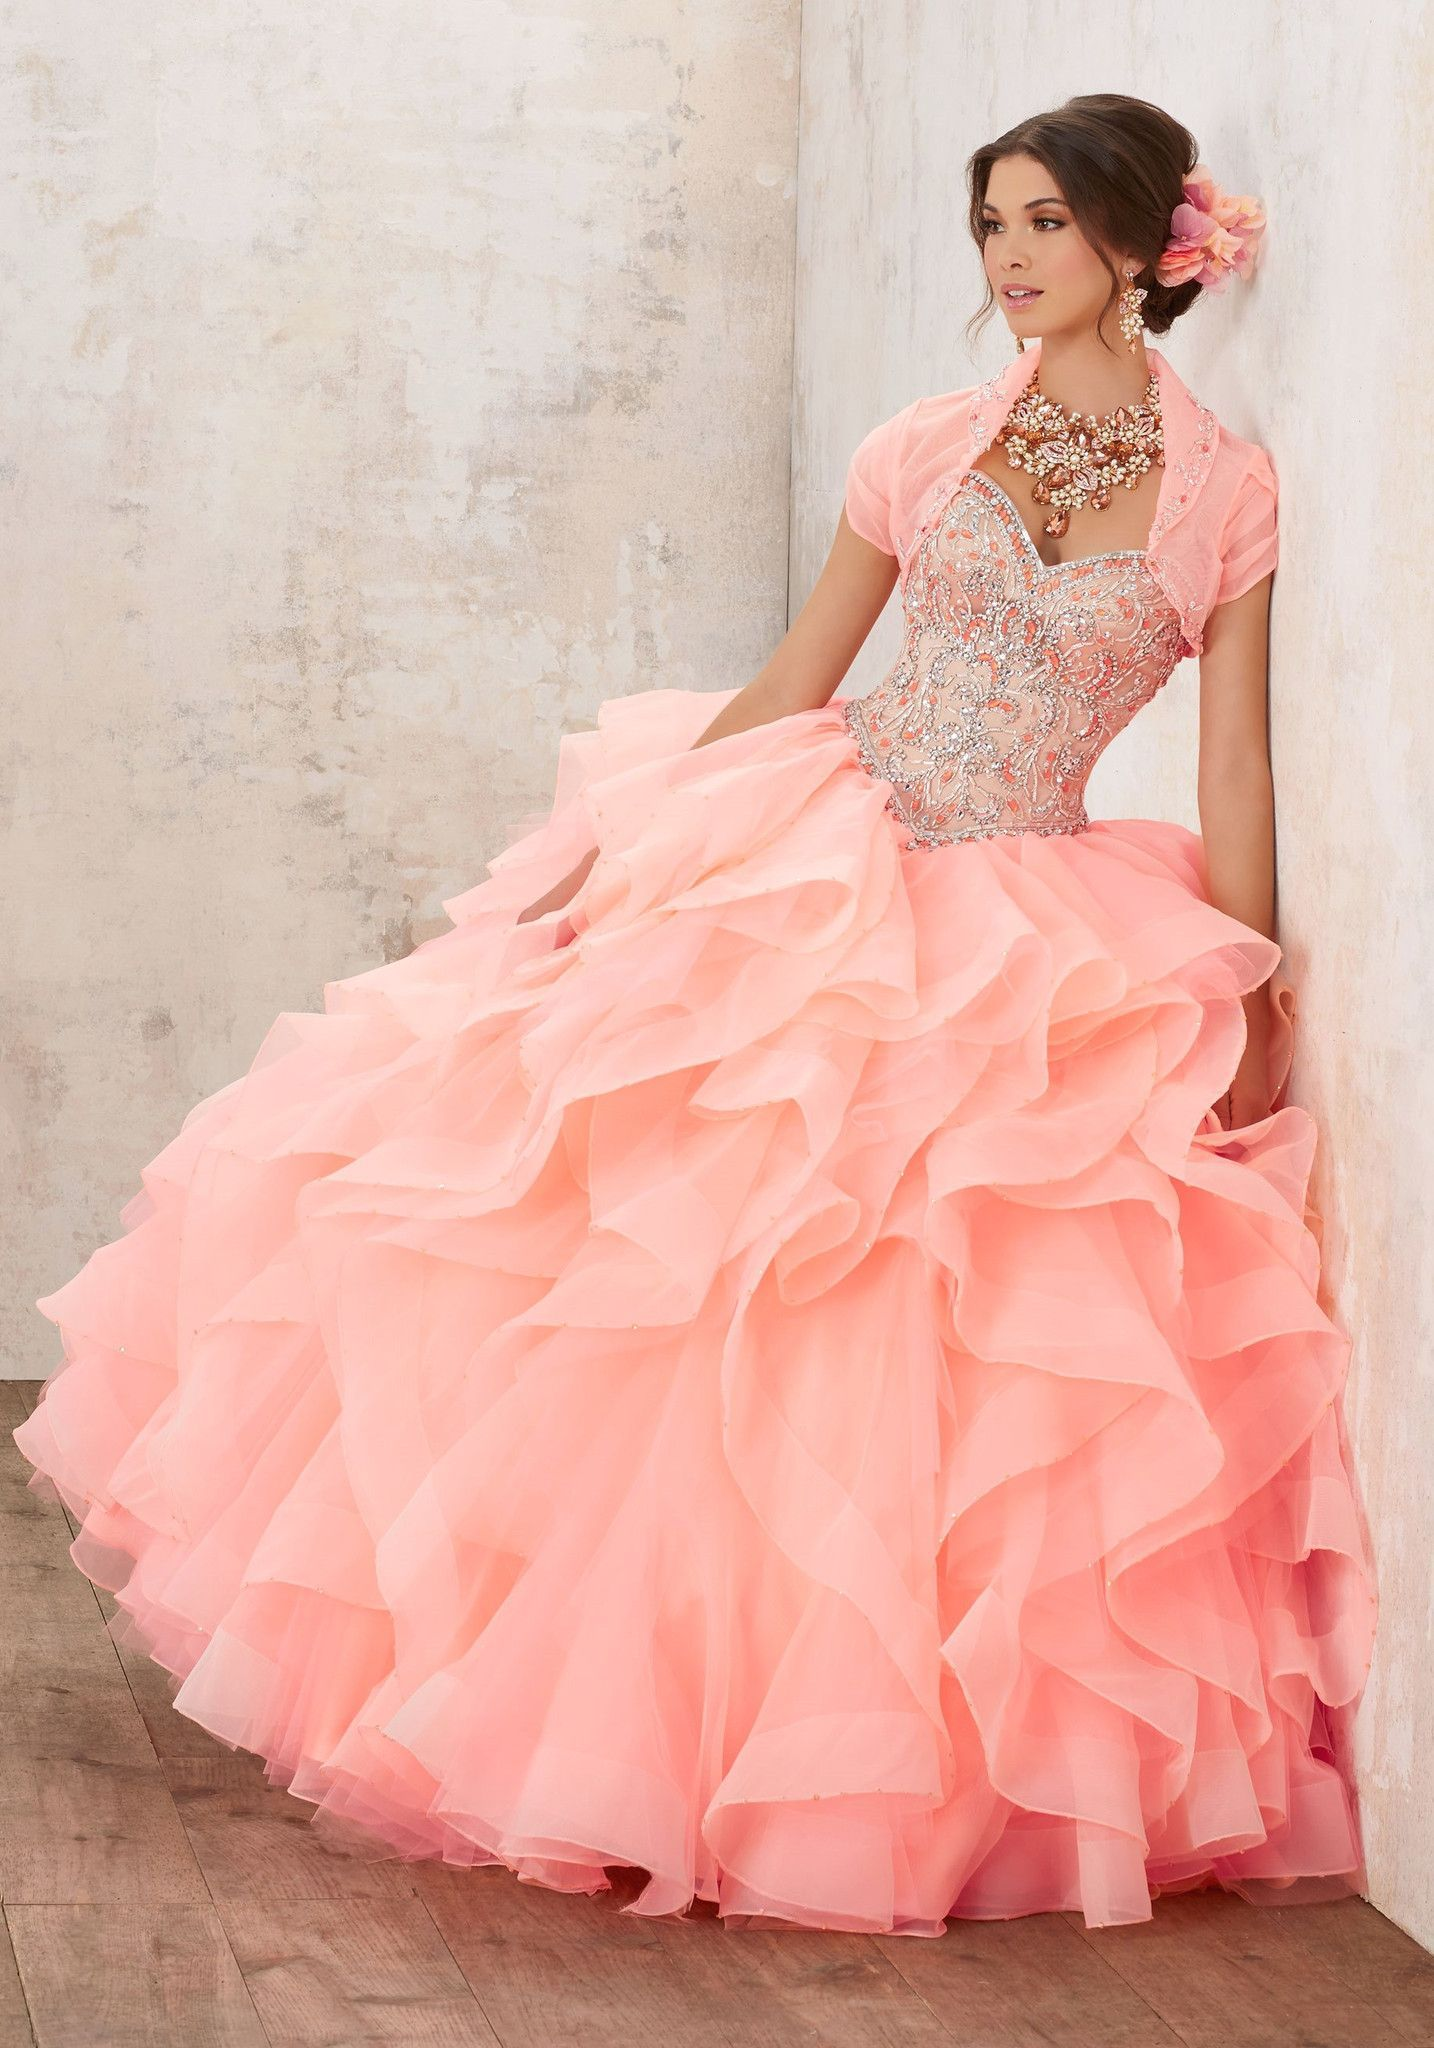 Mori Lee Quinceanera Dress Style 89126 | coral | Pinterest ...